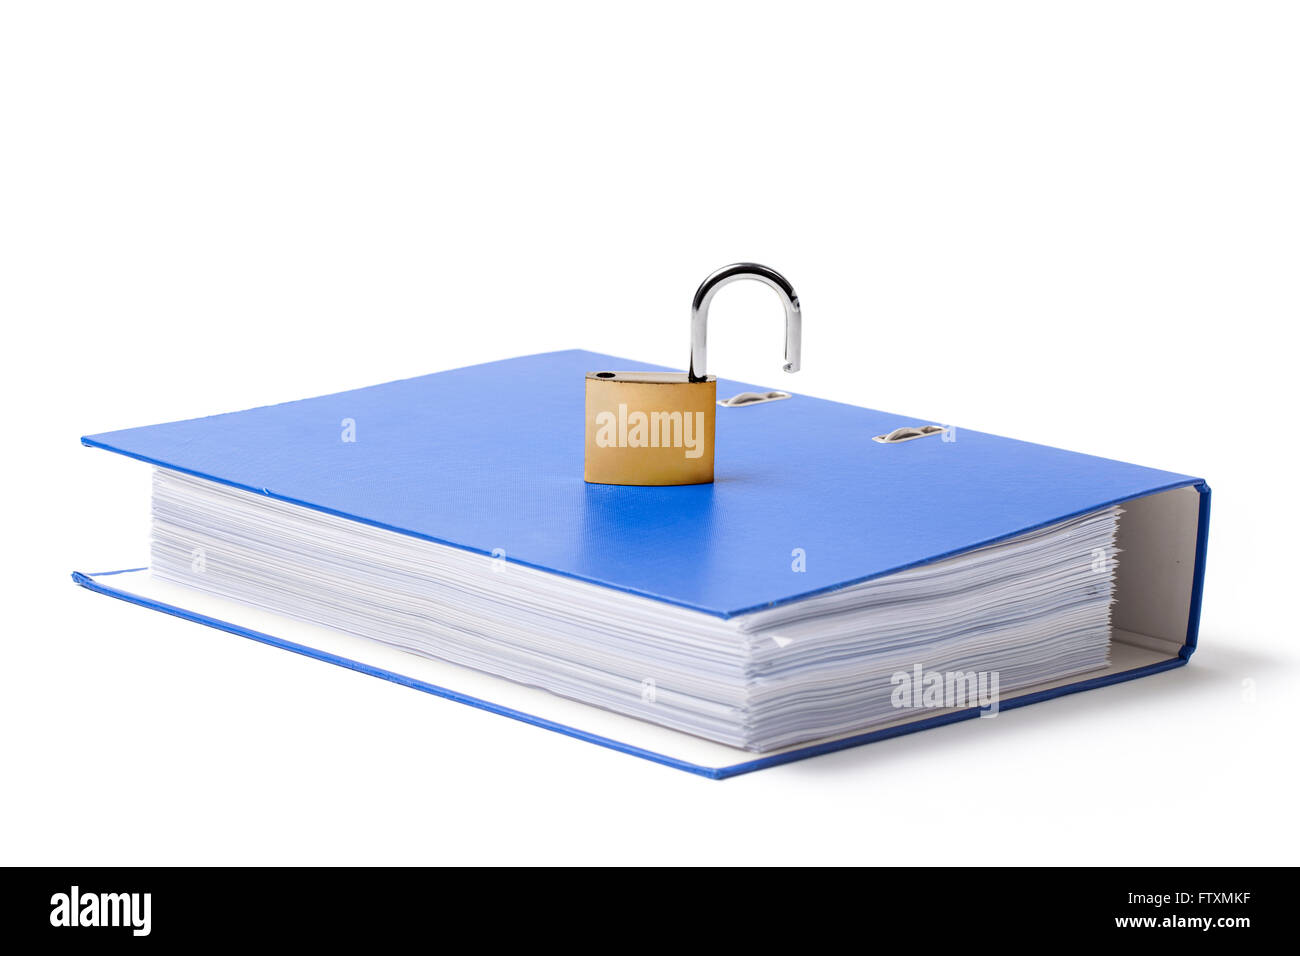 Open metal padlock put on a carton folder on white background. - Stock Image